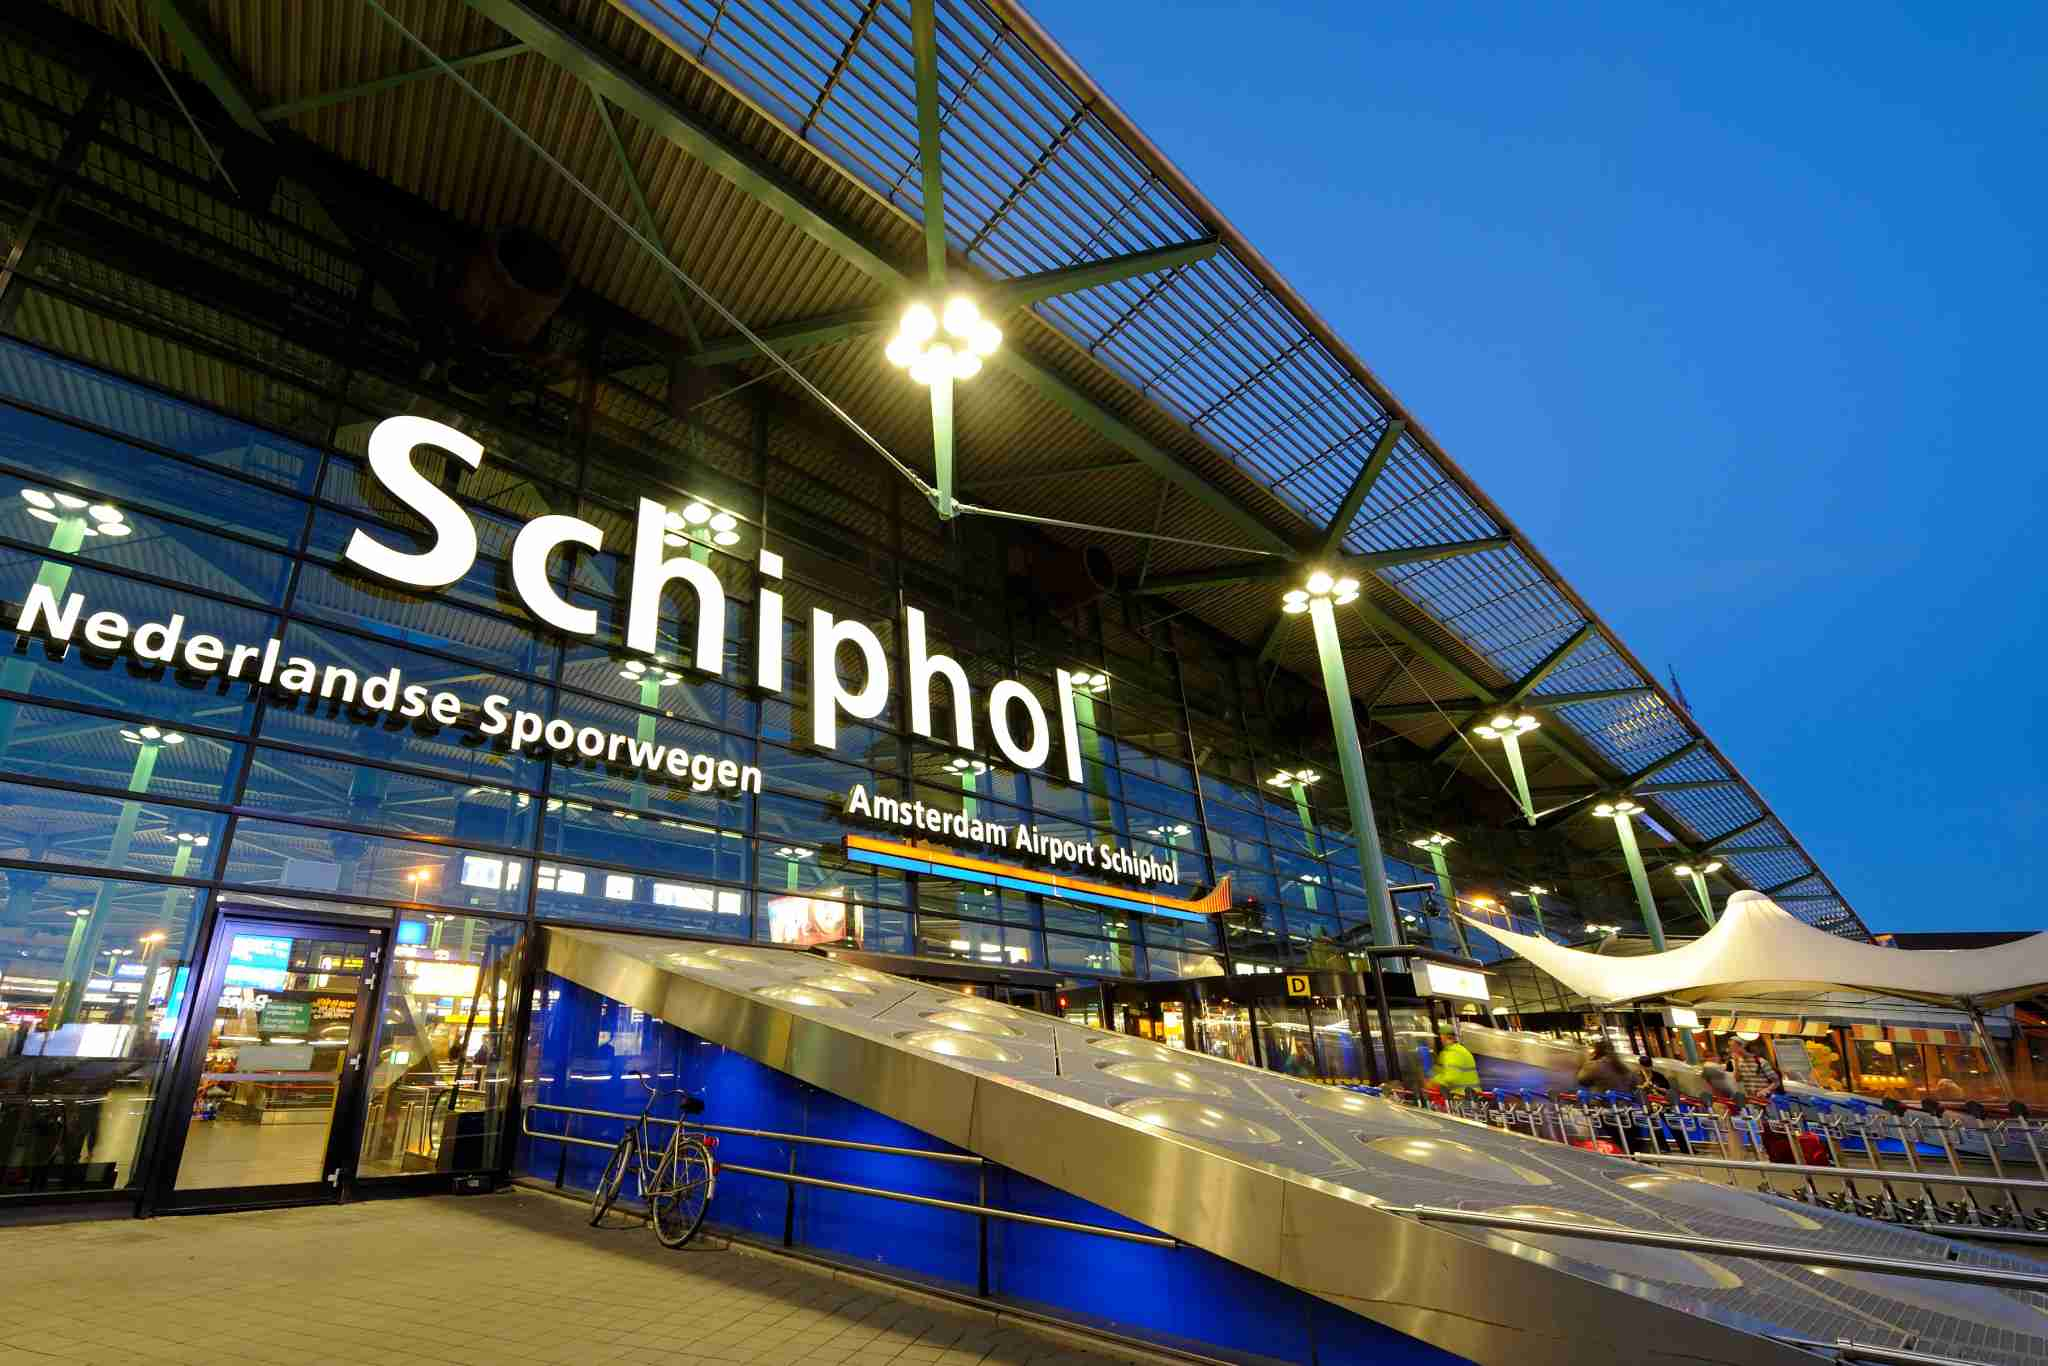 The entrance of Amsterdam Airport Schiphol in the evening. Schiphol is located 9 kilometers southwest of Amsterdam.